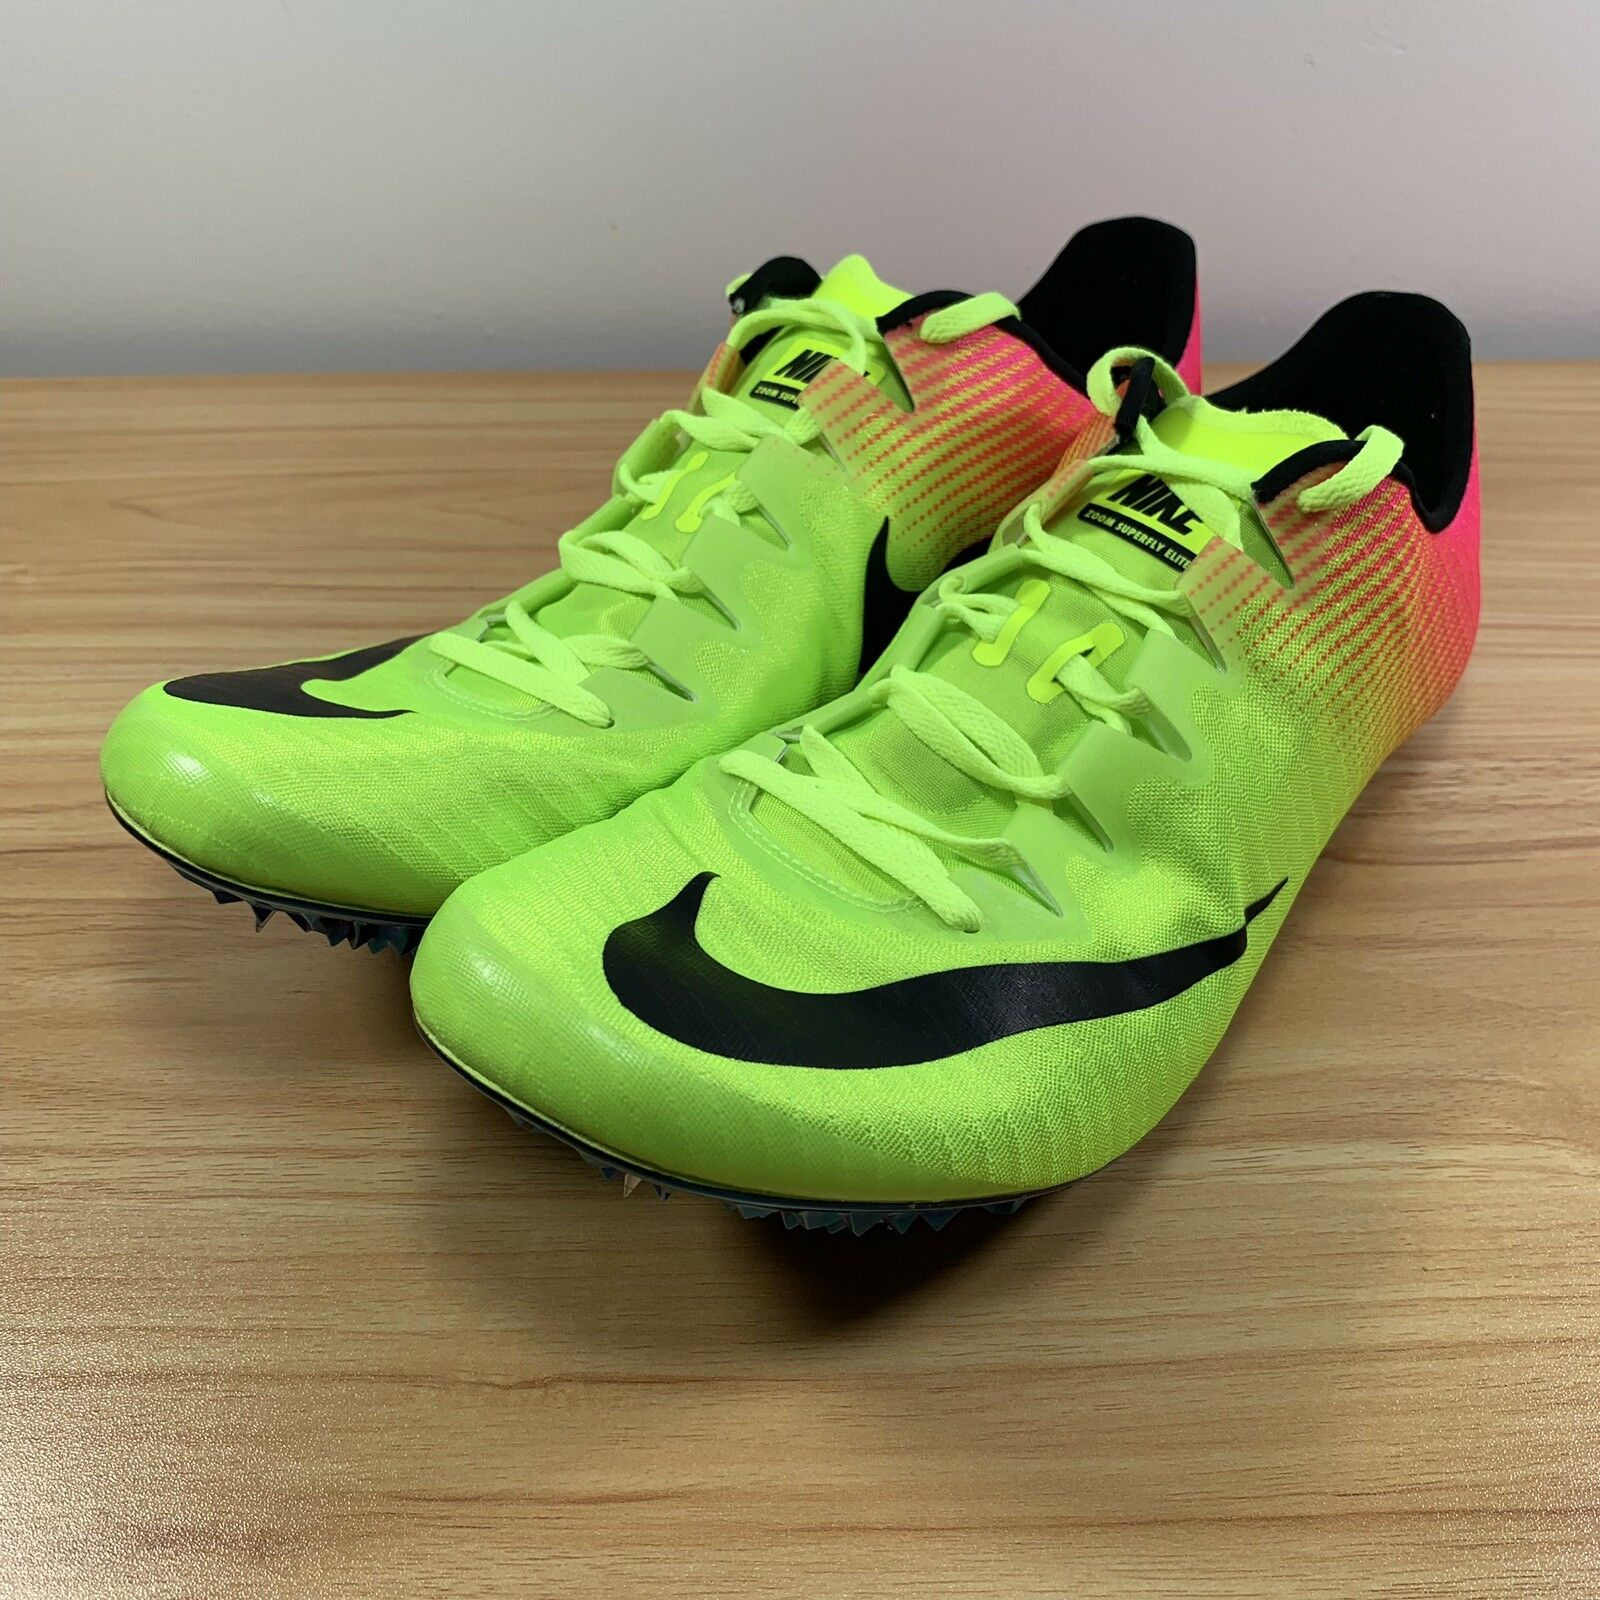 sports shoes 6a039 088bf Nike Zoom Superfly Elite Elite Elite Racing Spikes Size 13 Rio Olympics  Volt Pink 835996-